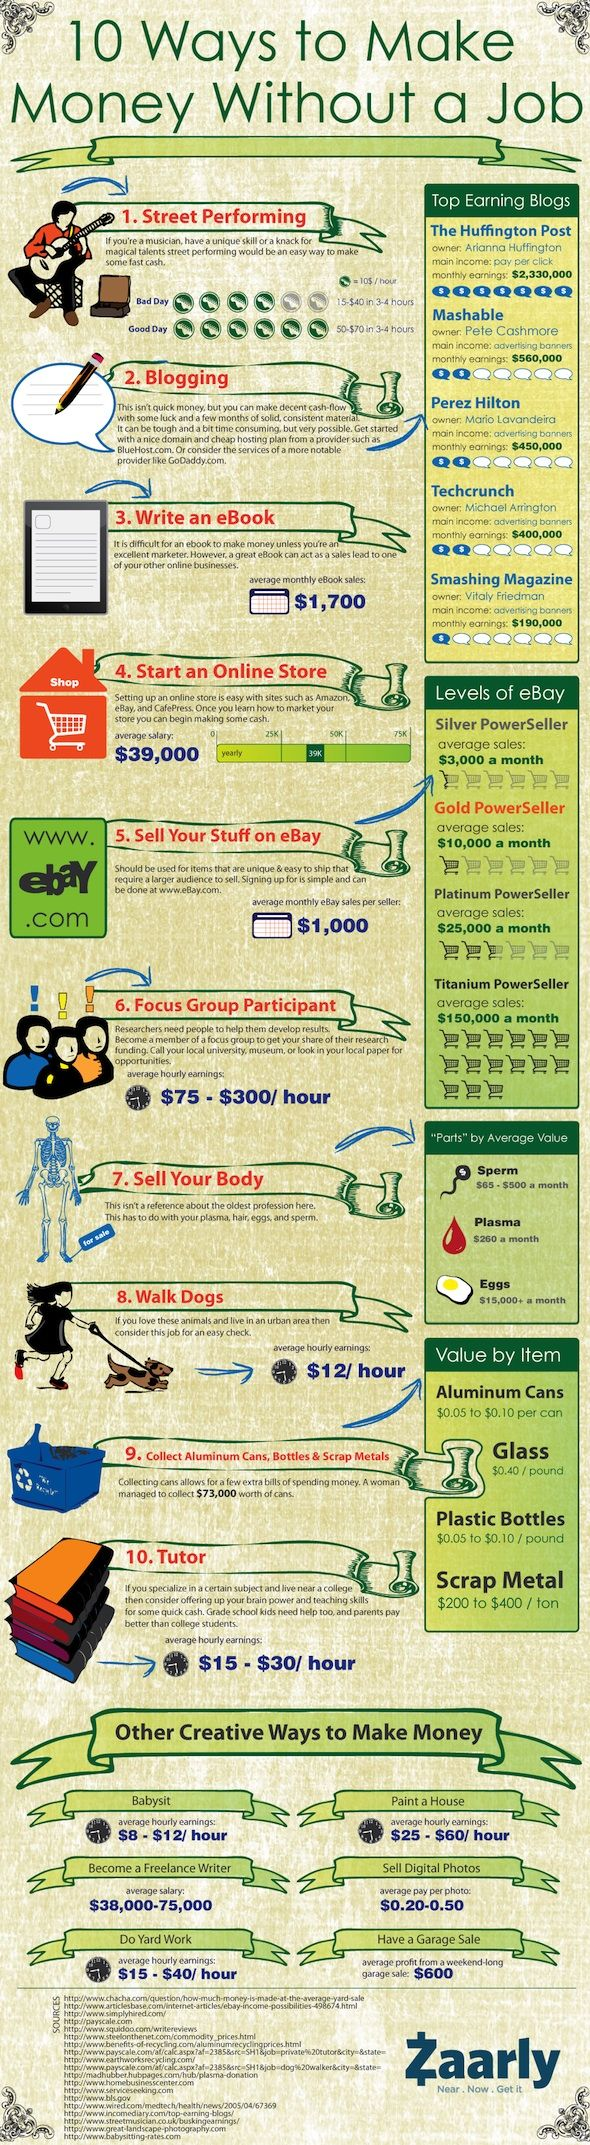 10 ways to make money without a job #infographic